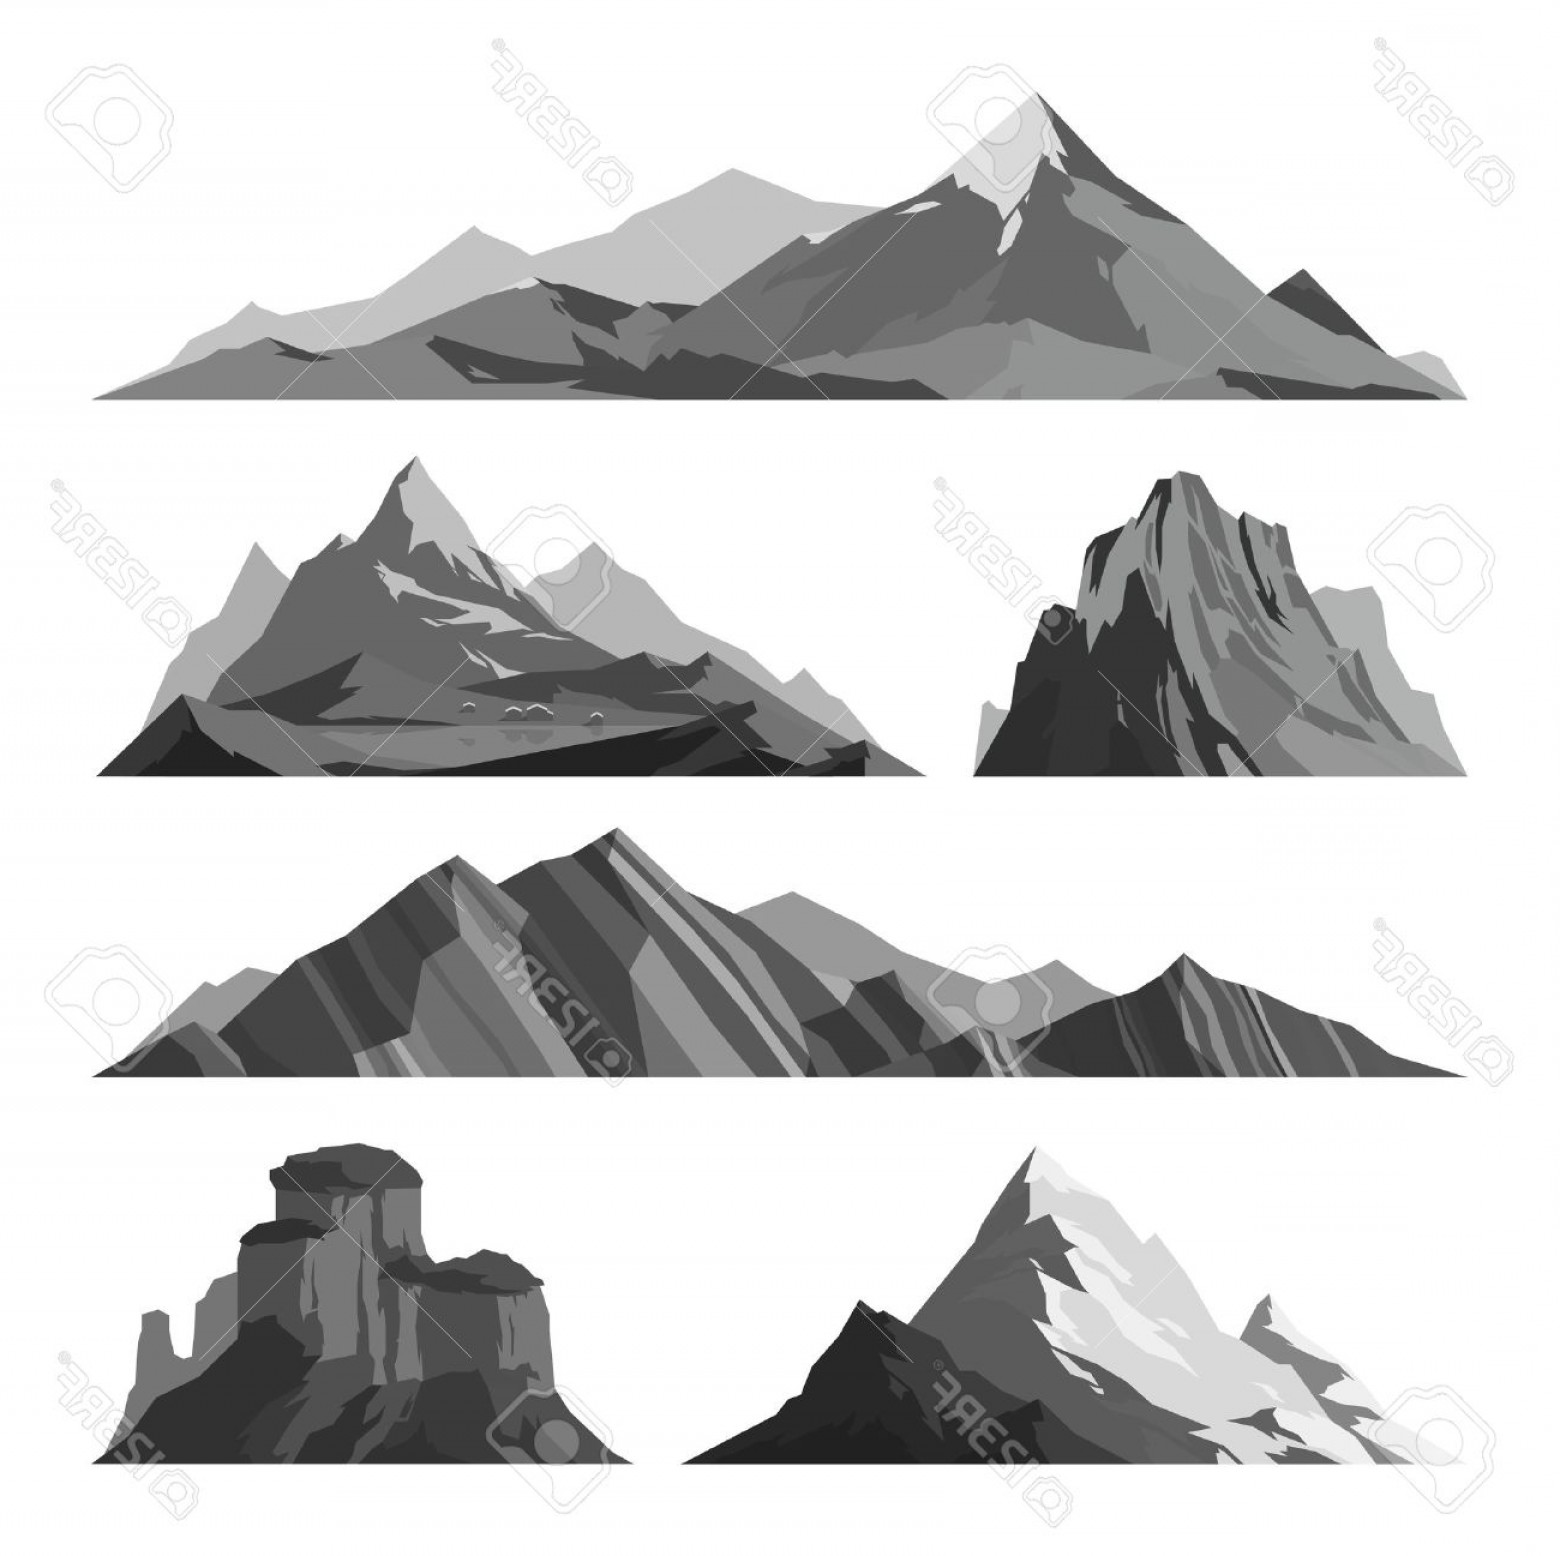 White Mountain Silhouette Vector Free: Photostock Vector Mountain Vector Illustration Nature Mountain Silhouette Elements Outdoor Icon Snow Ice Mountain Tops